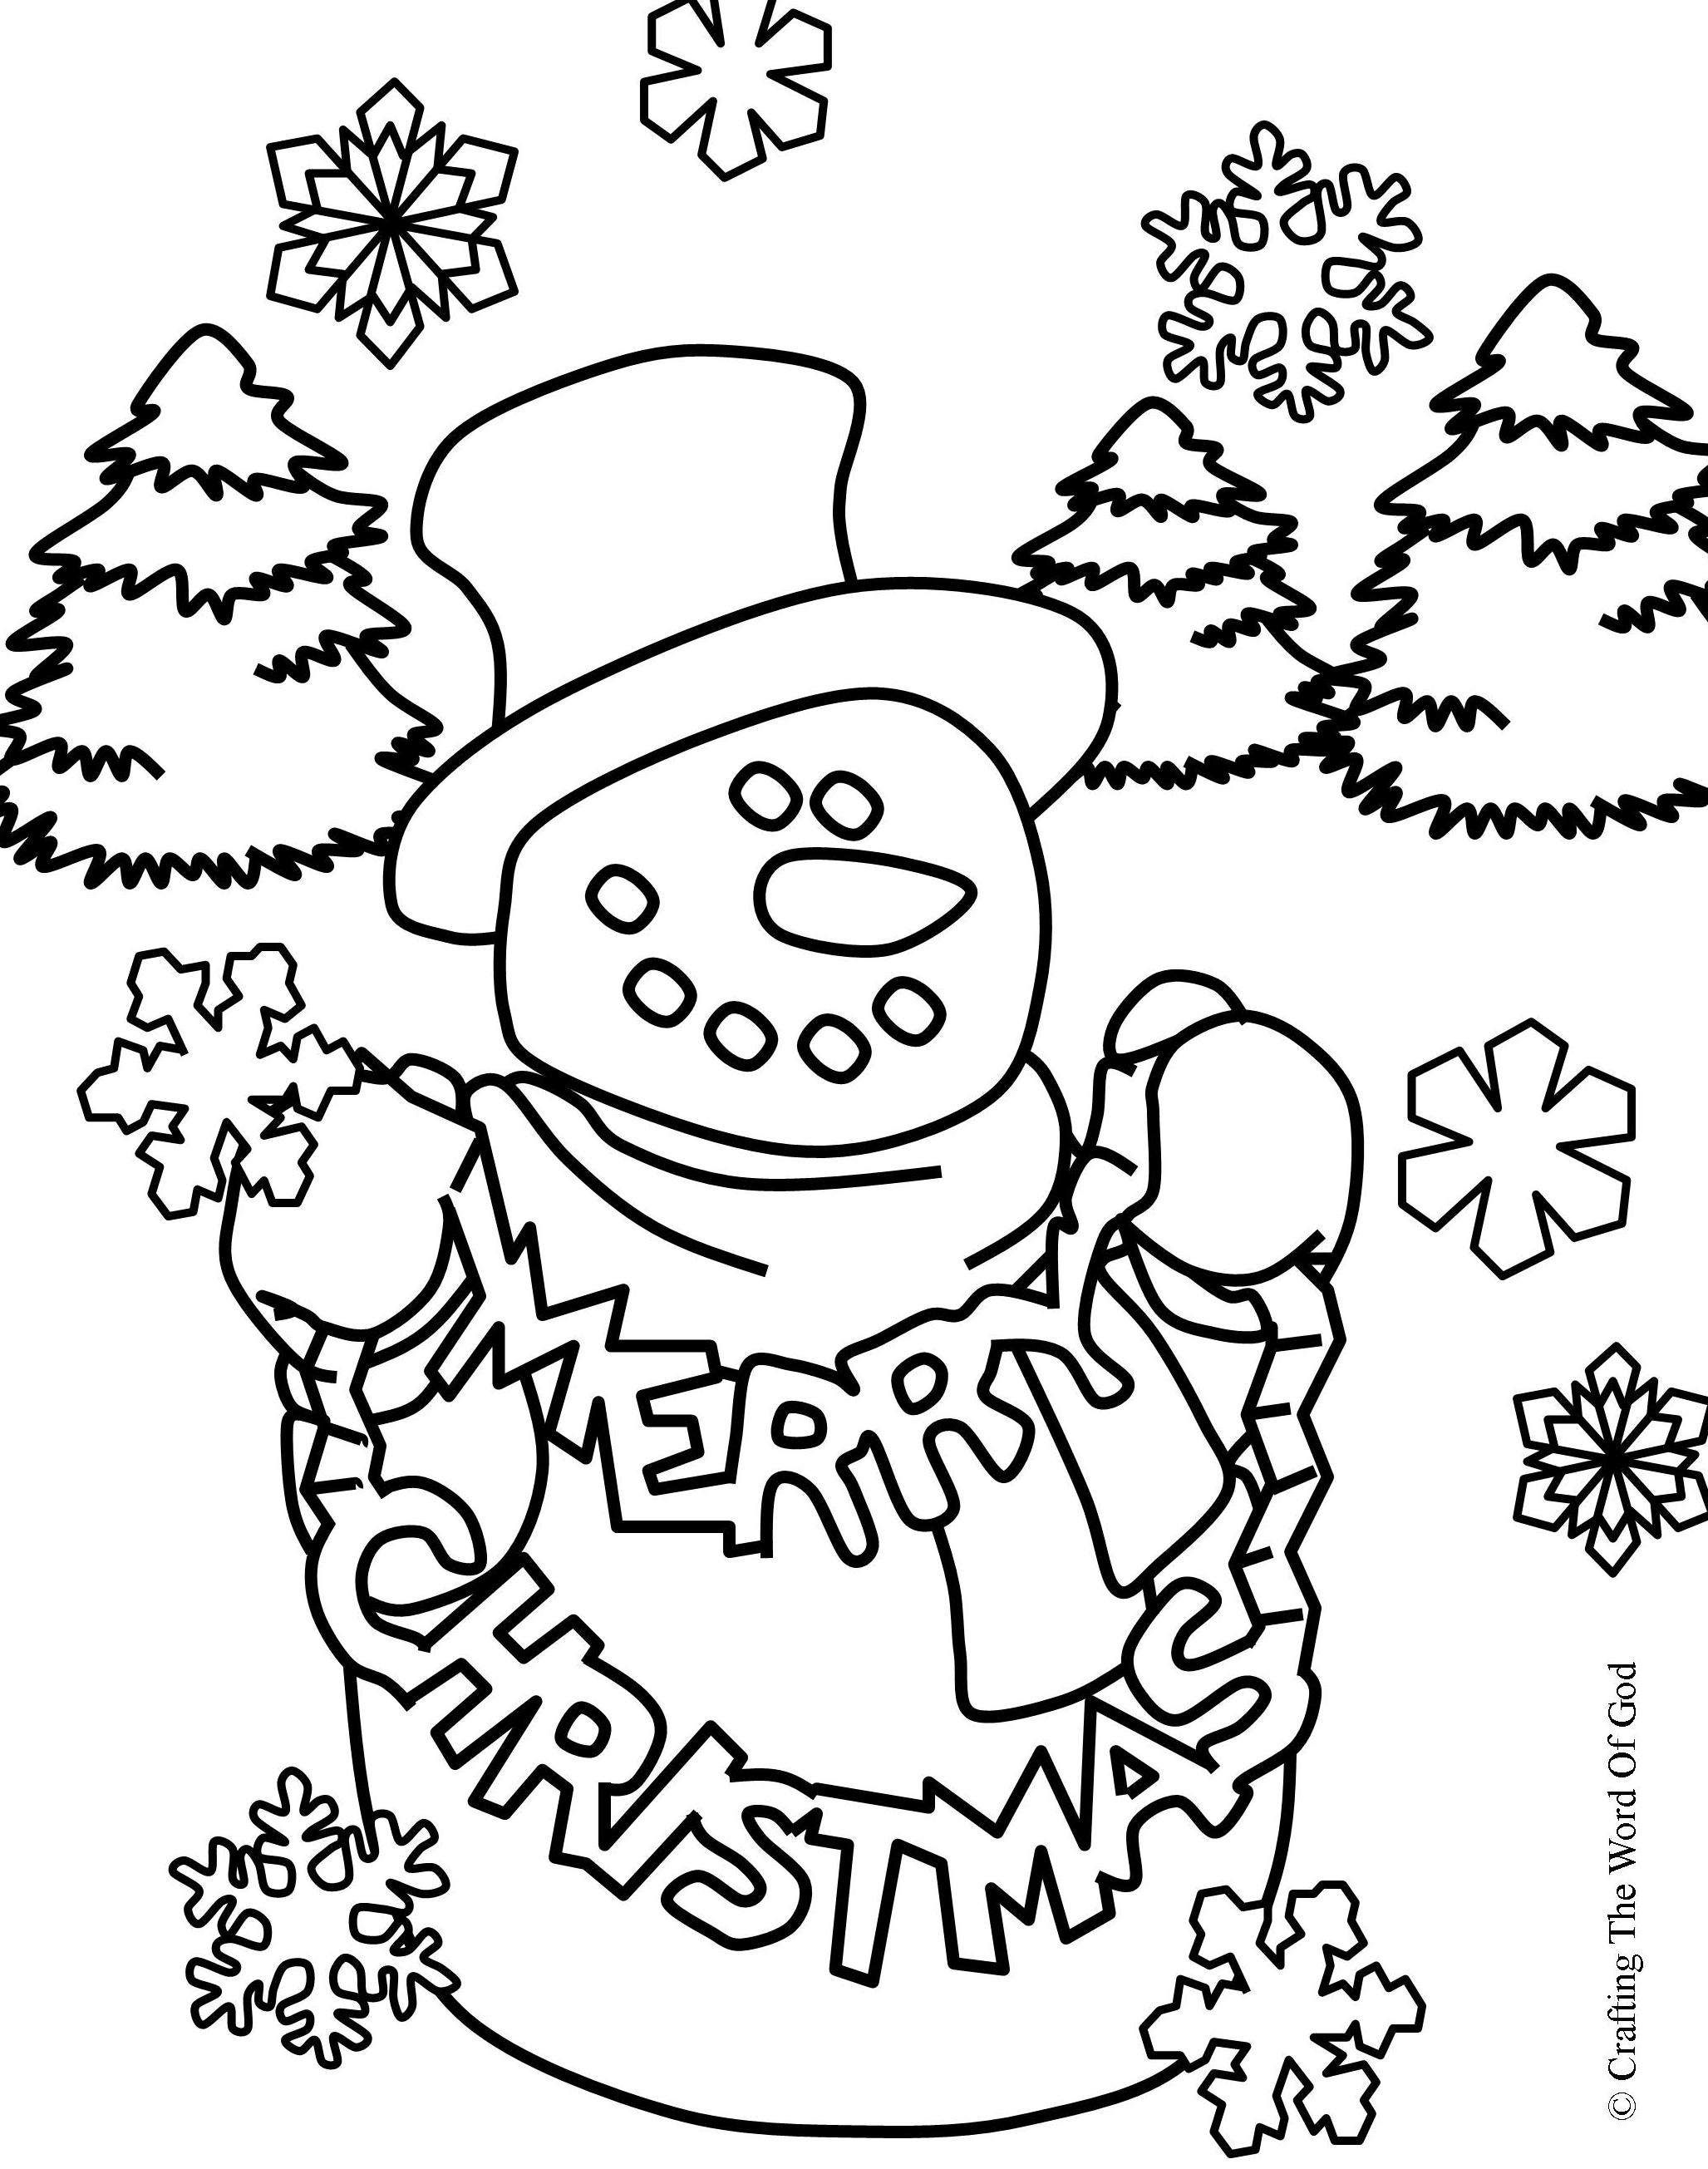 christmas coloring page 2 coloring page crafting the word of god. Black Bedroom Furniture Sets. Home Design Ideas